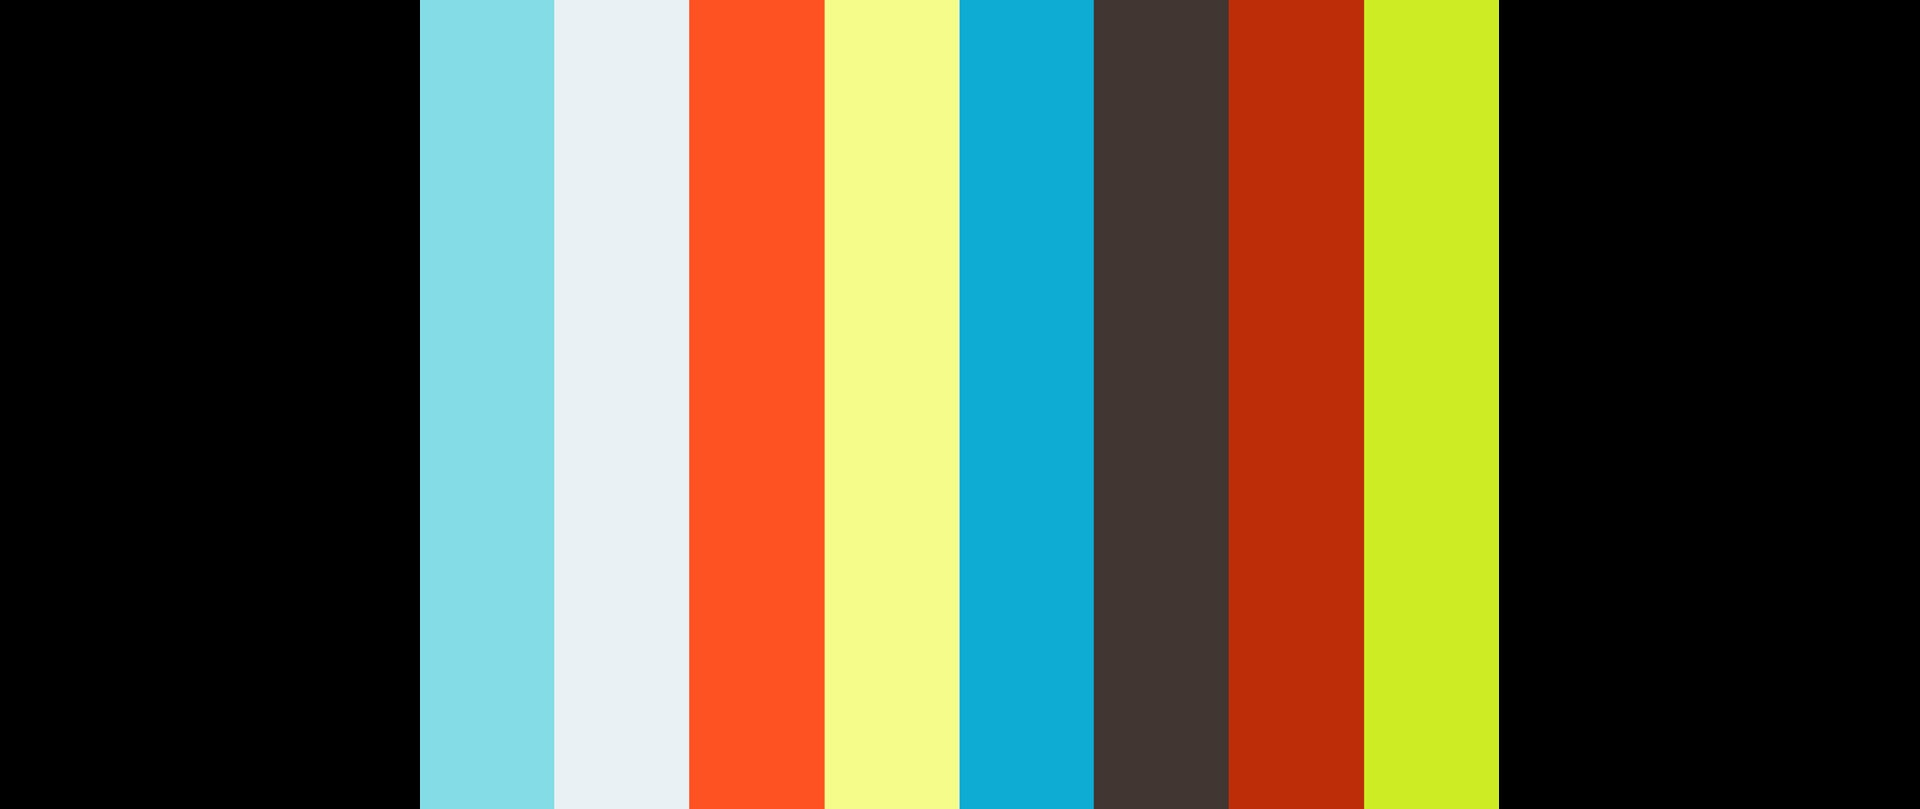 Jan and The Skies of Slovakia